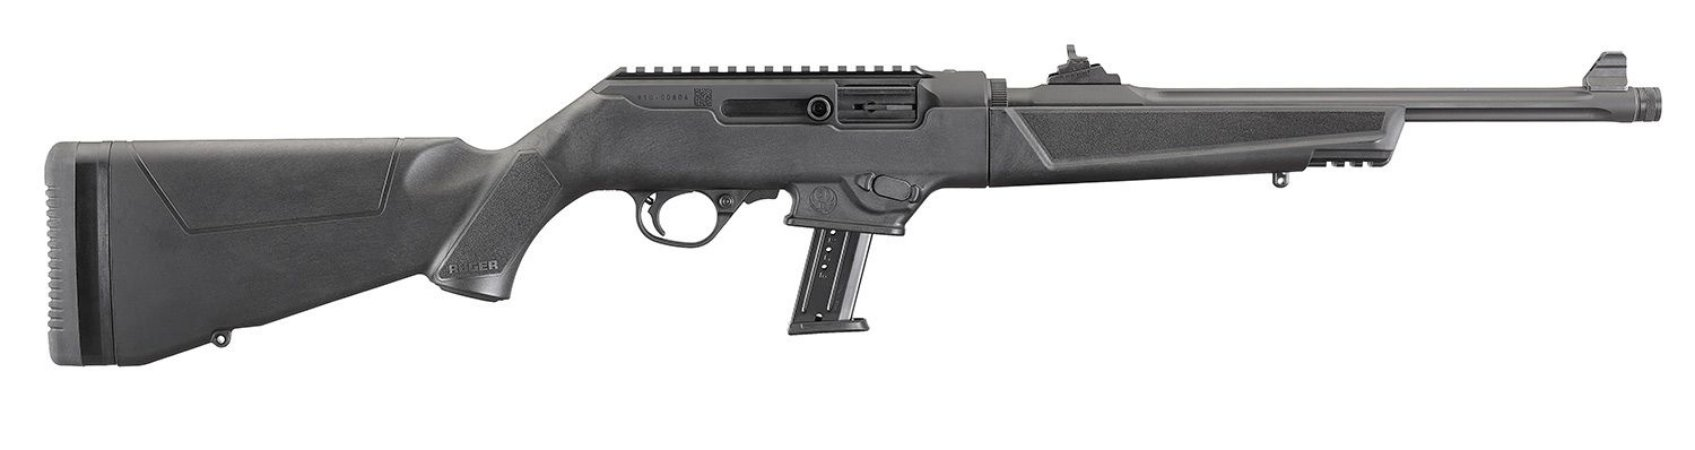 CARABINA RUGER PC CARBINE